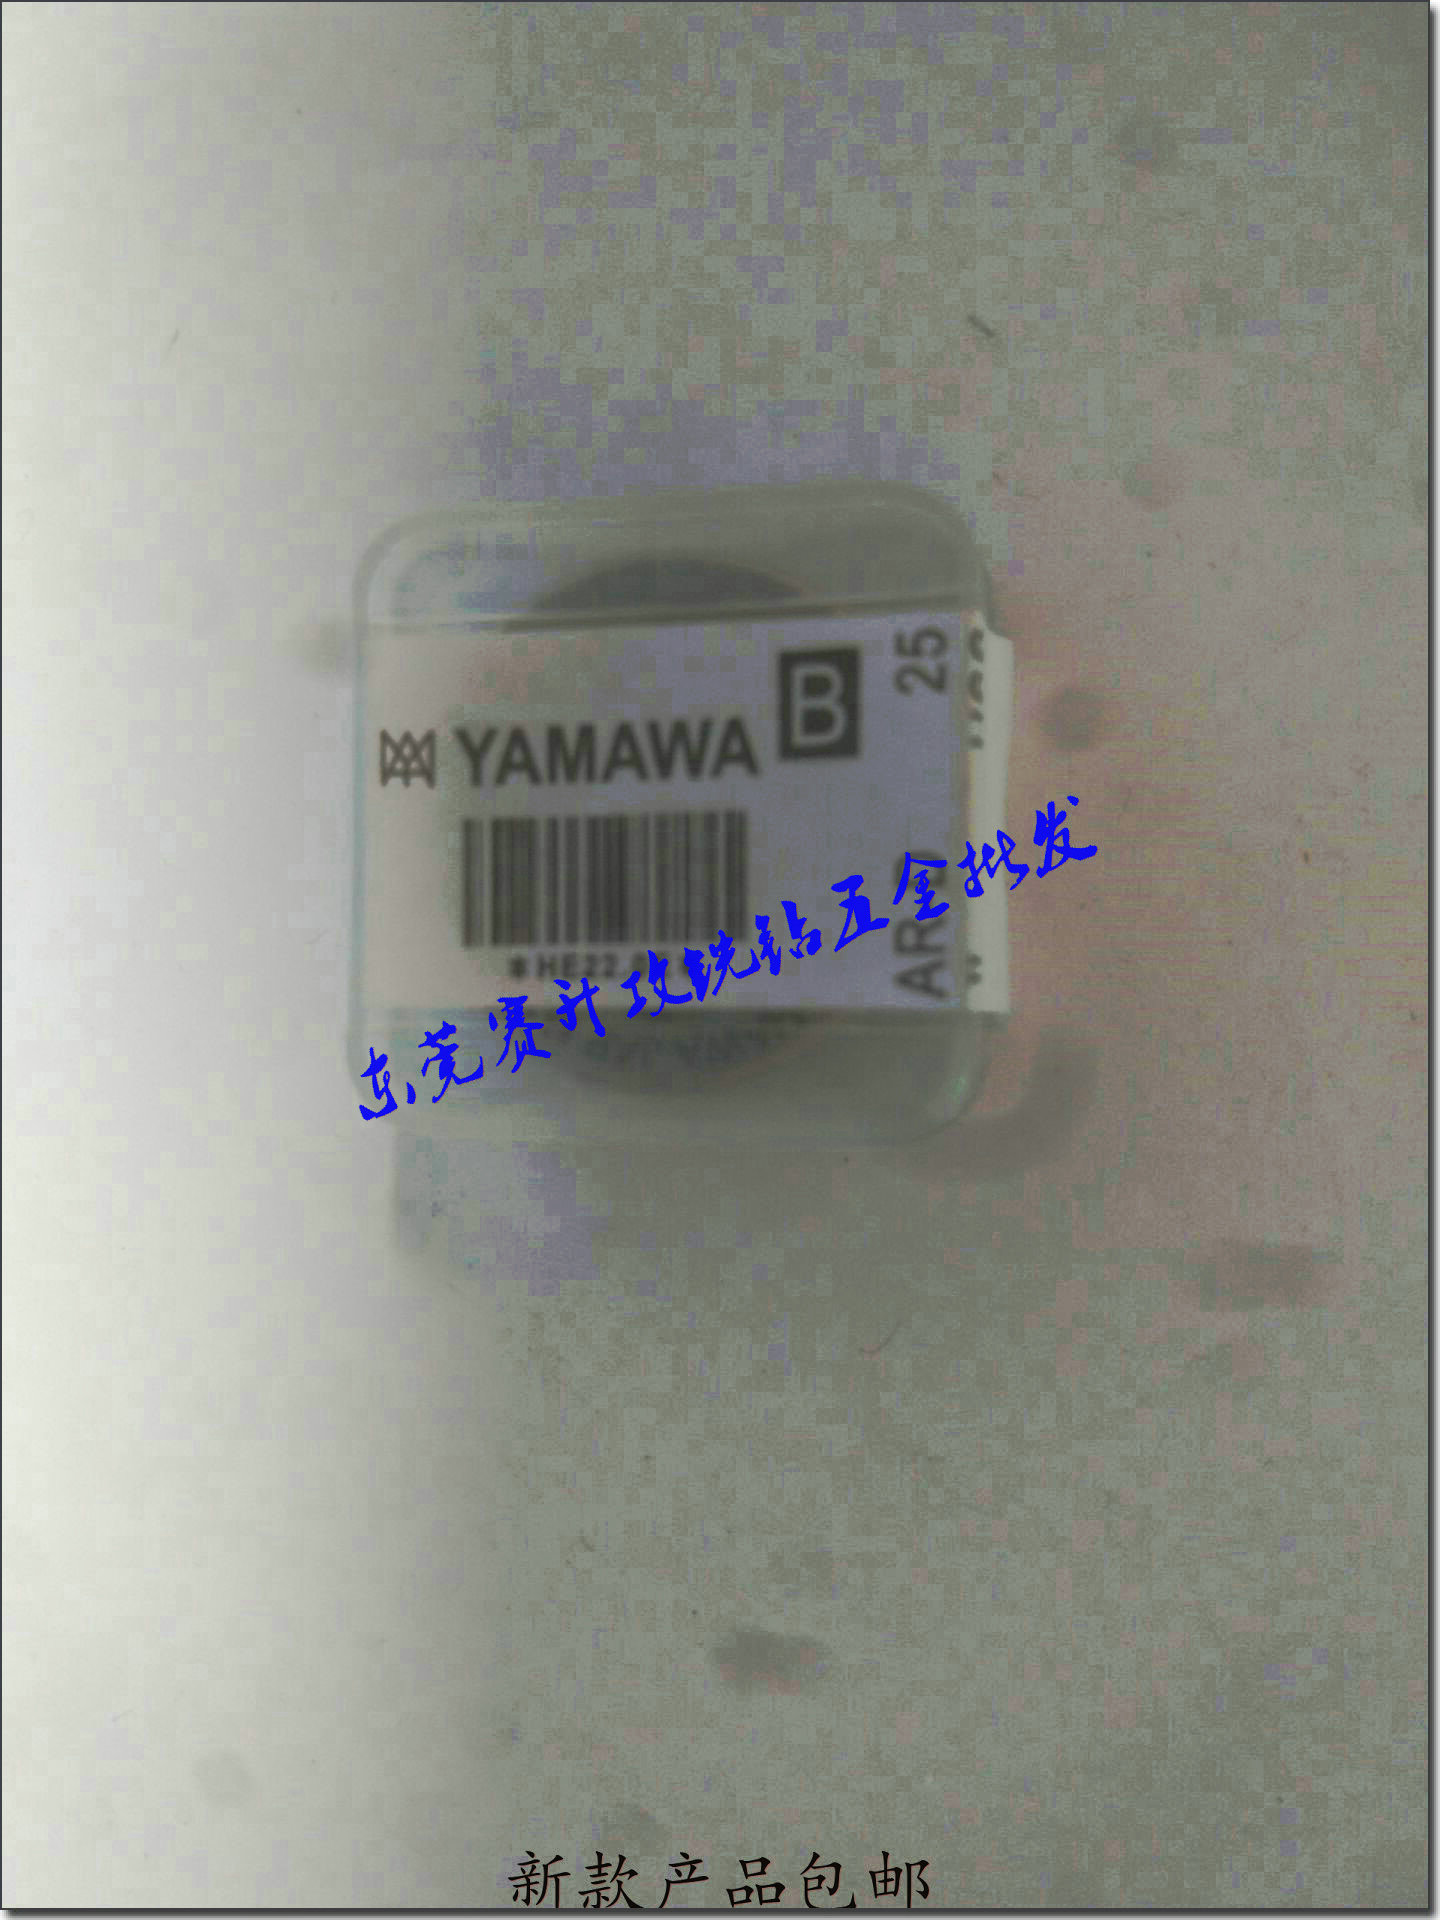 The Japanese special stainless steel circular screwing / YAMAWA / inch / metric / ANSI / M1-16 for left teeth fine teeth